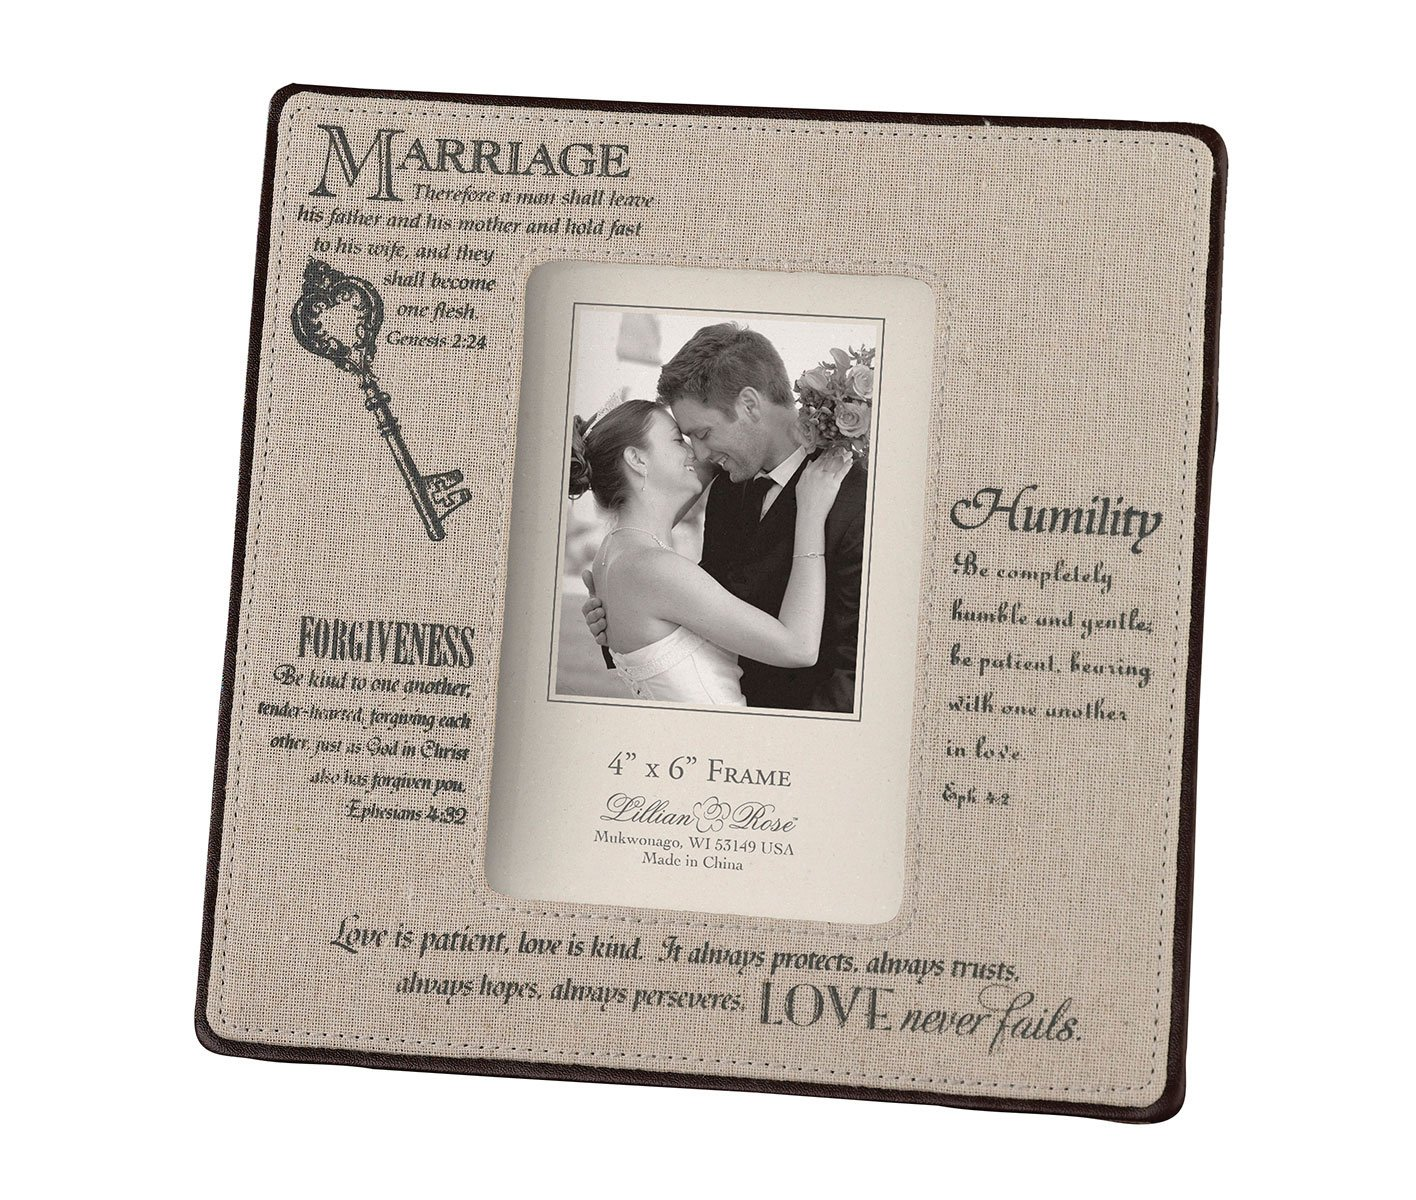 Lillian Rose Traditional Marriage Picture Frame 4x6 FR370